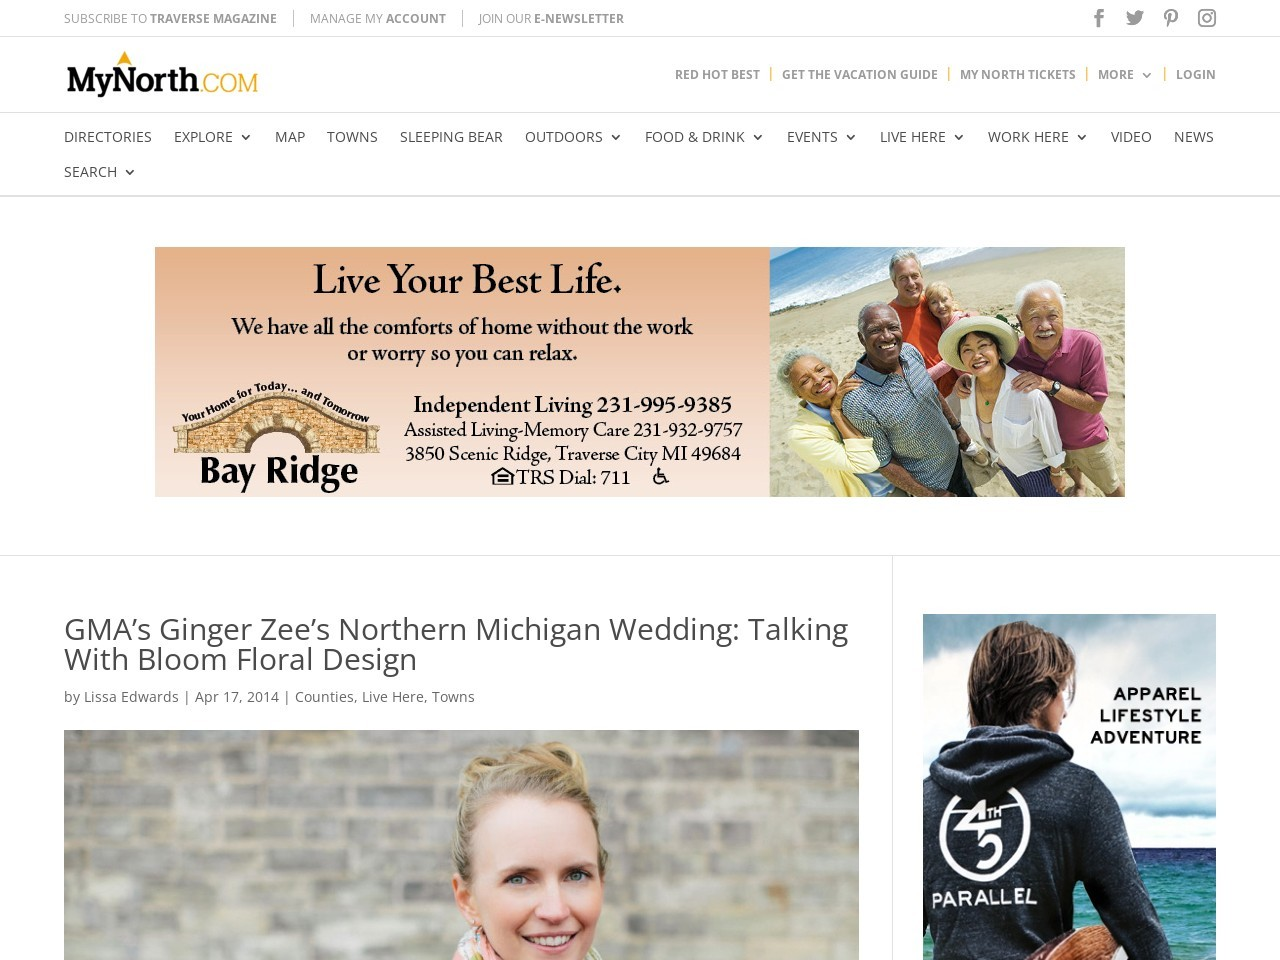 GMA's Ginger Zee's Northern Michigan Wedding: Talking With Bloom Floral …